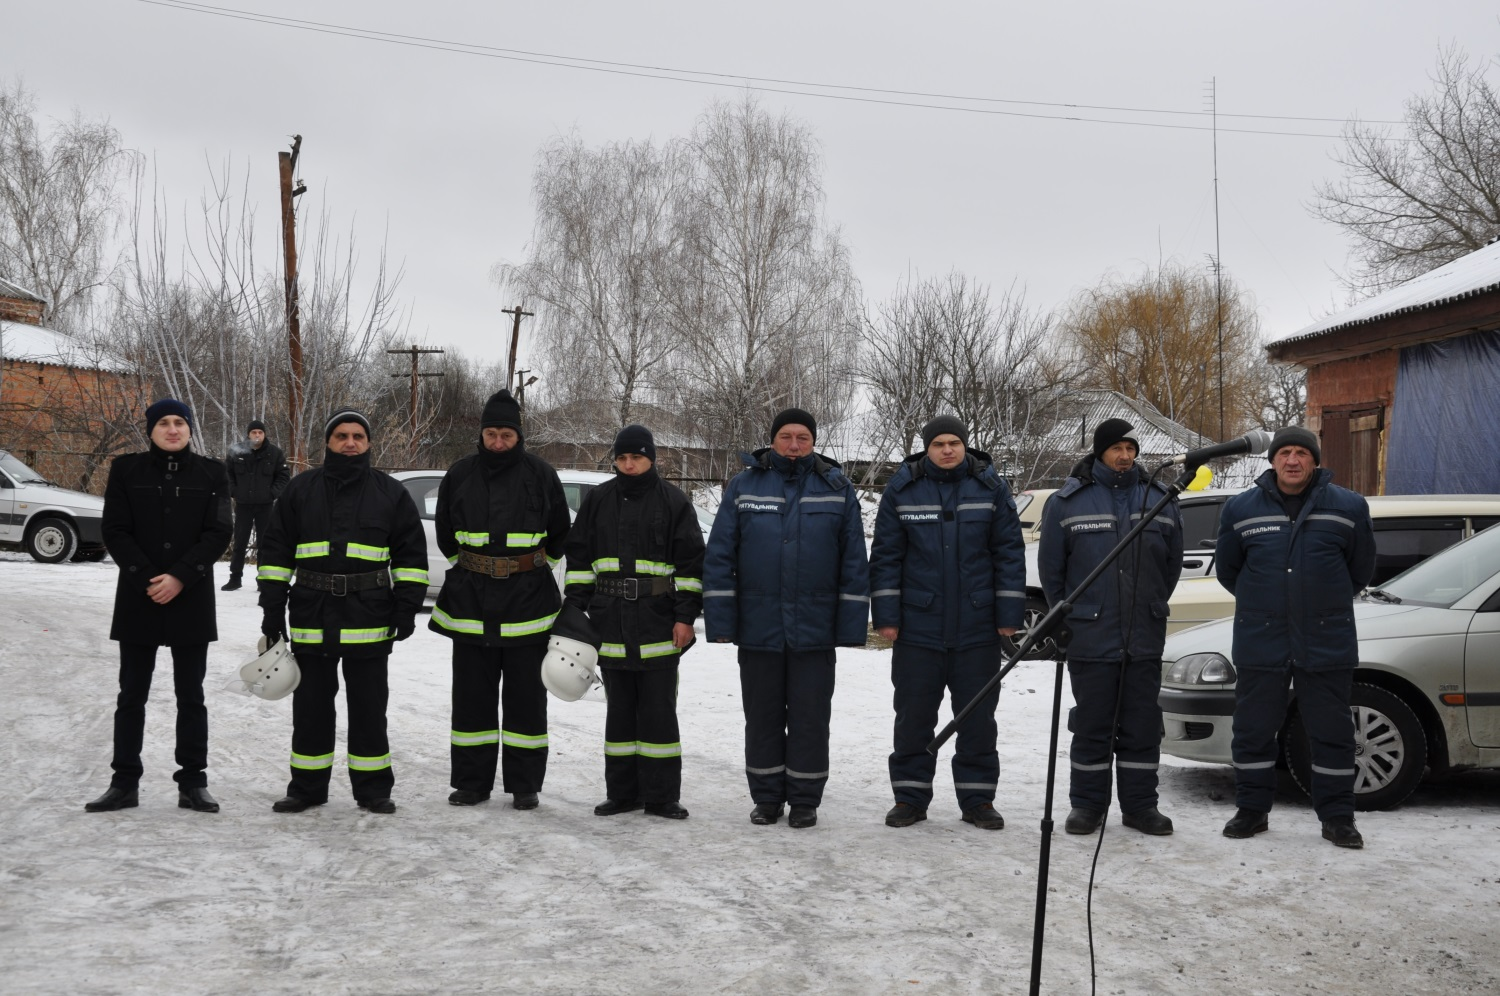 Malopereshchepynska hromada has its own firefighters